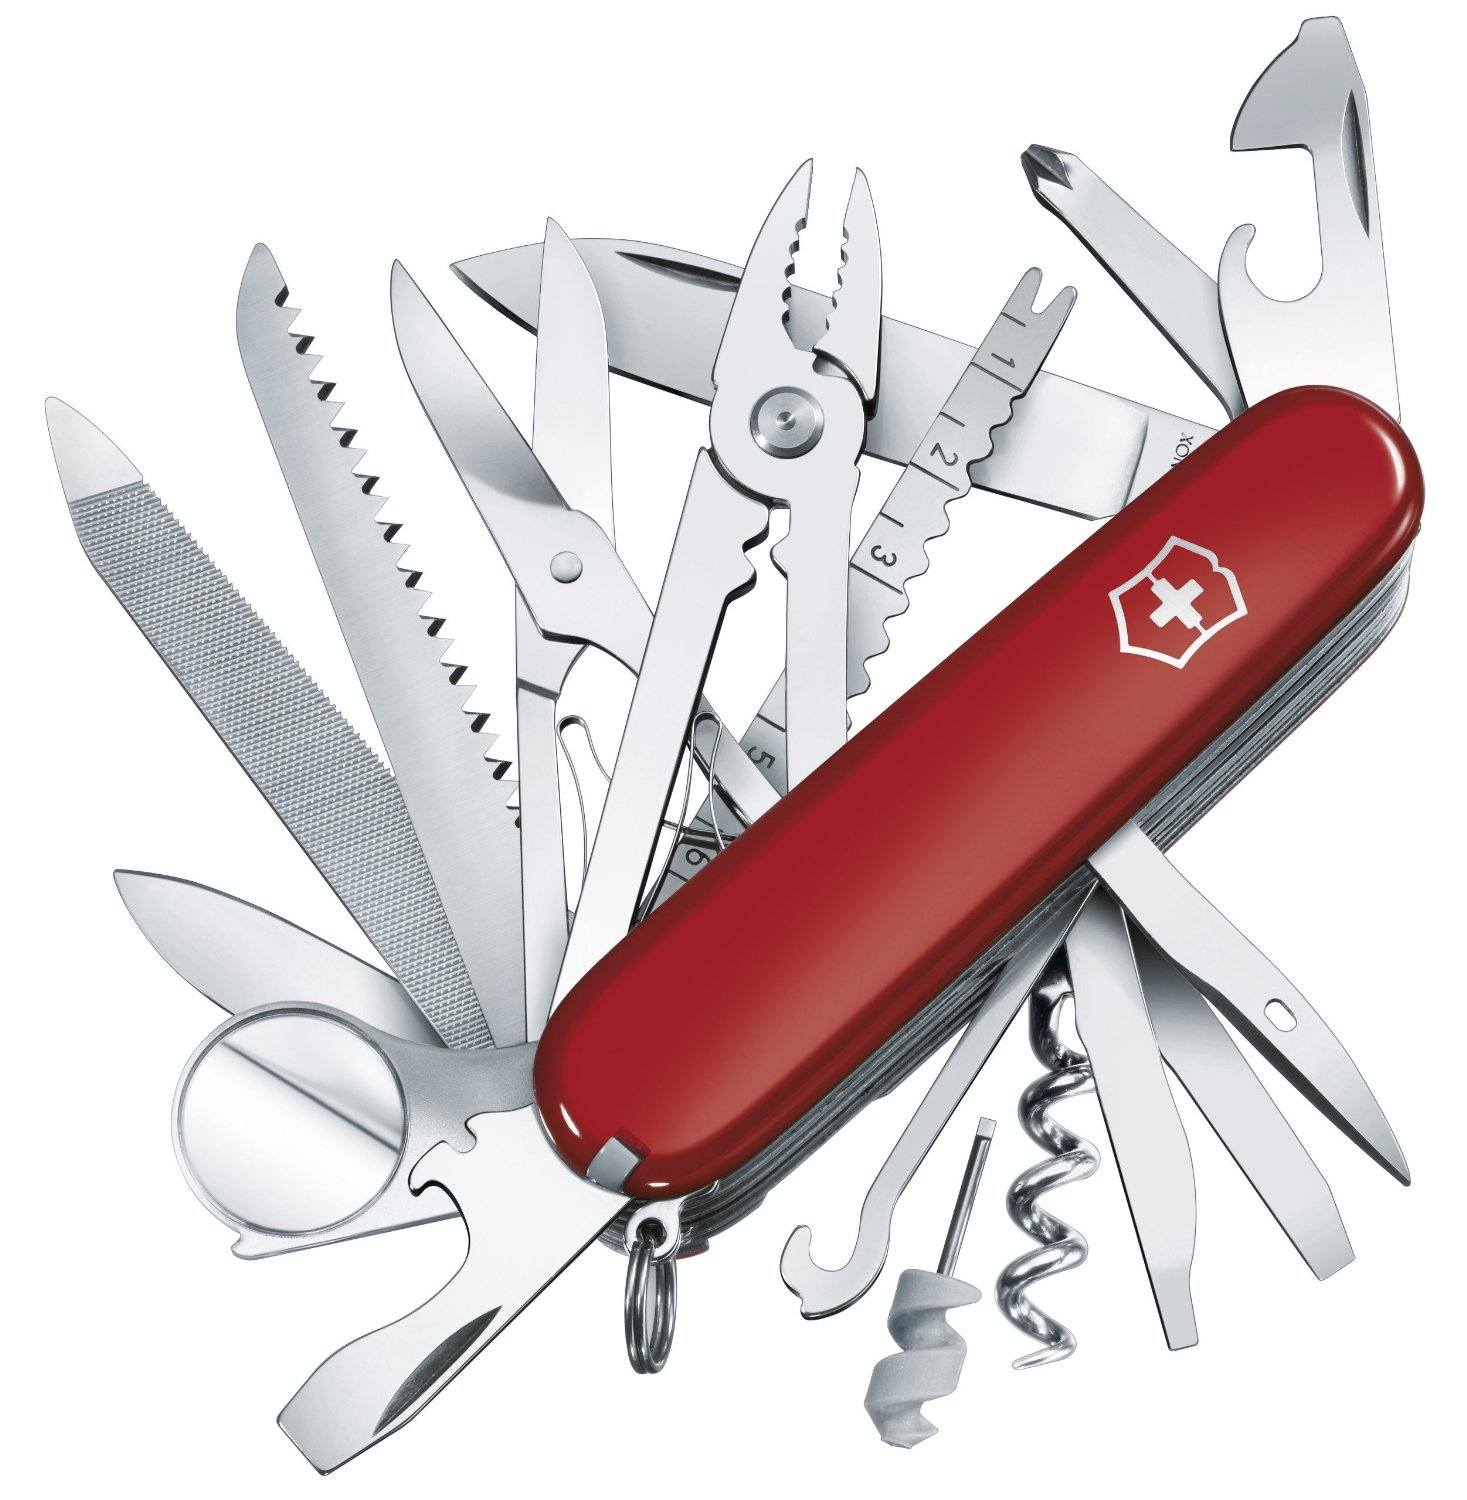 Best Multi Tool For Survival Uk Preppers Guide